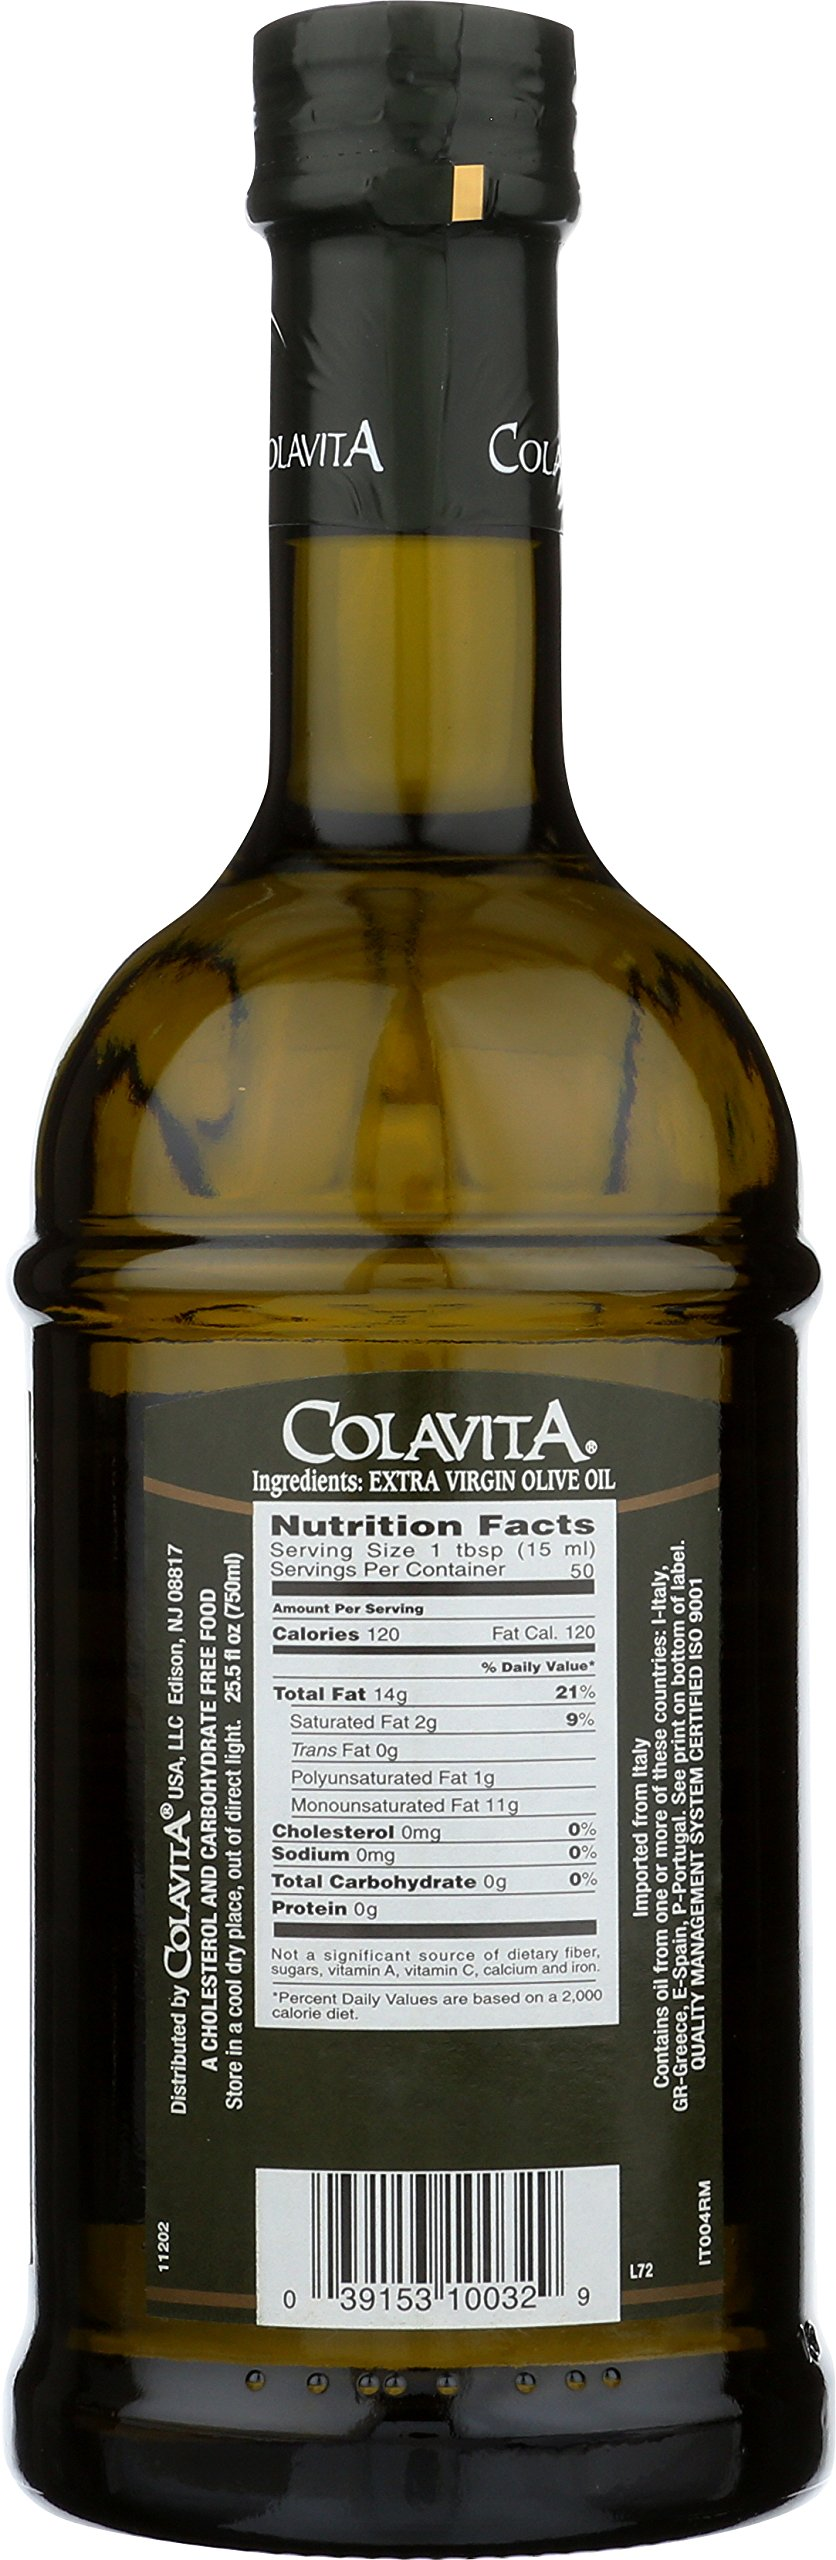 Colavita Extra Virgin Olive Oil Special, 25.5 Ounce (Pack of 2) by Colavita (Image #2)